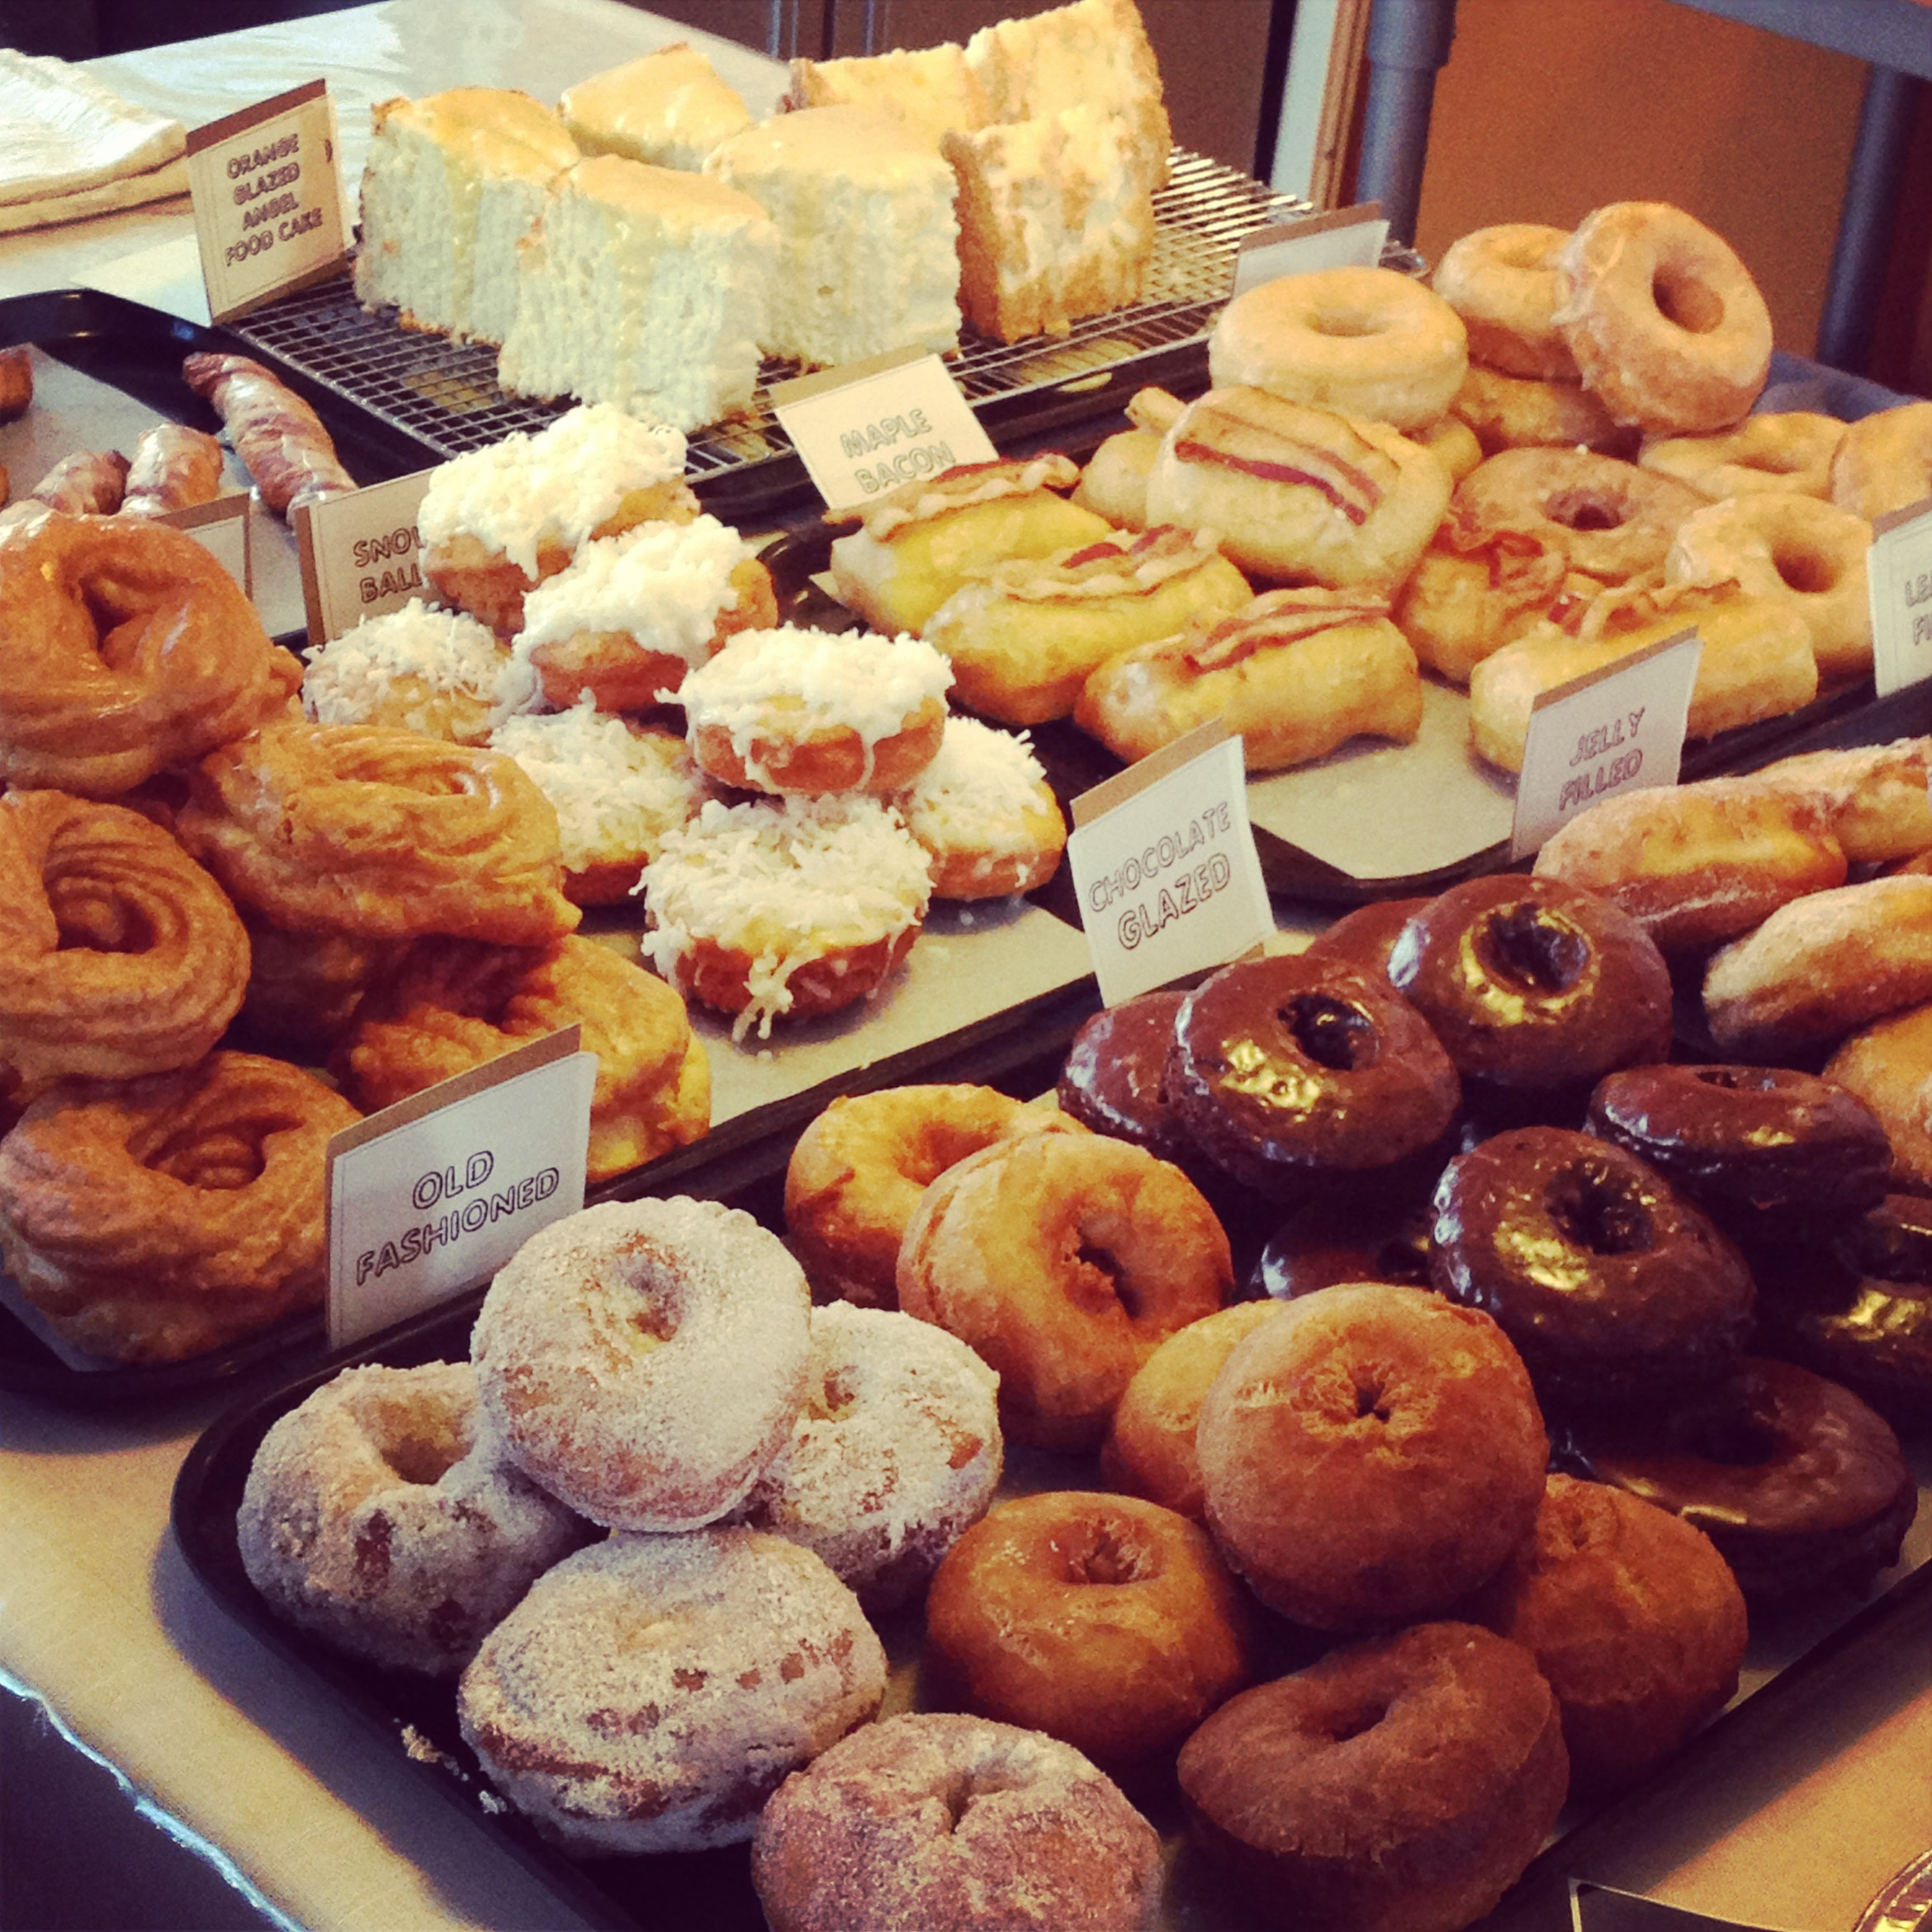 Local Donuts - Christina Rosalie